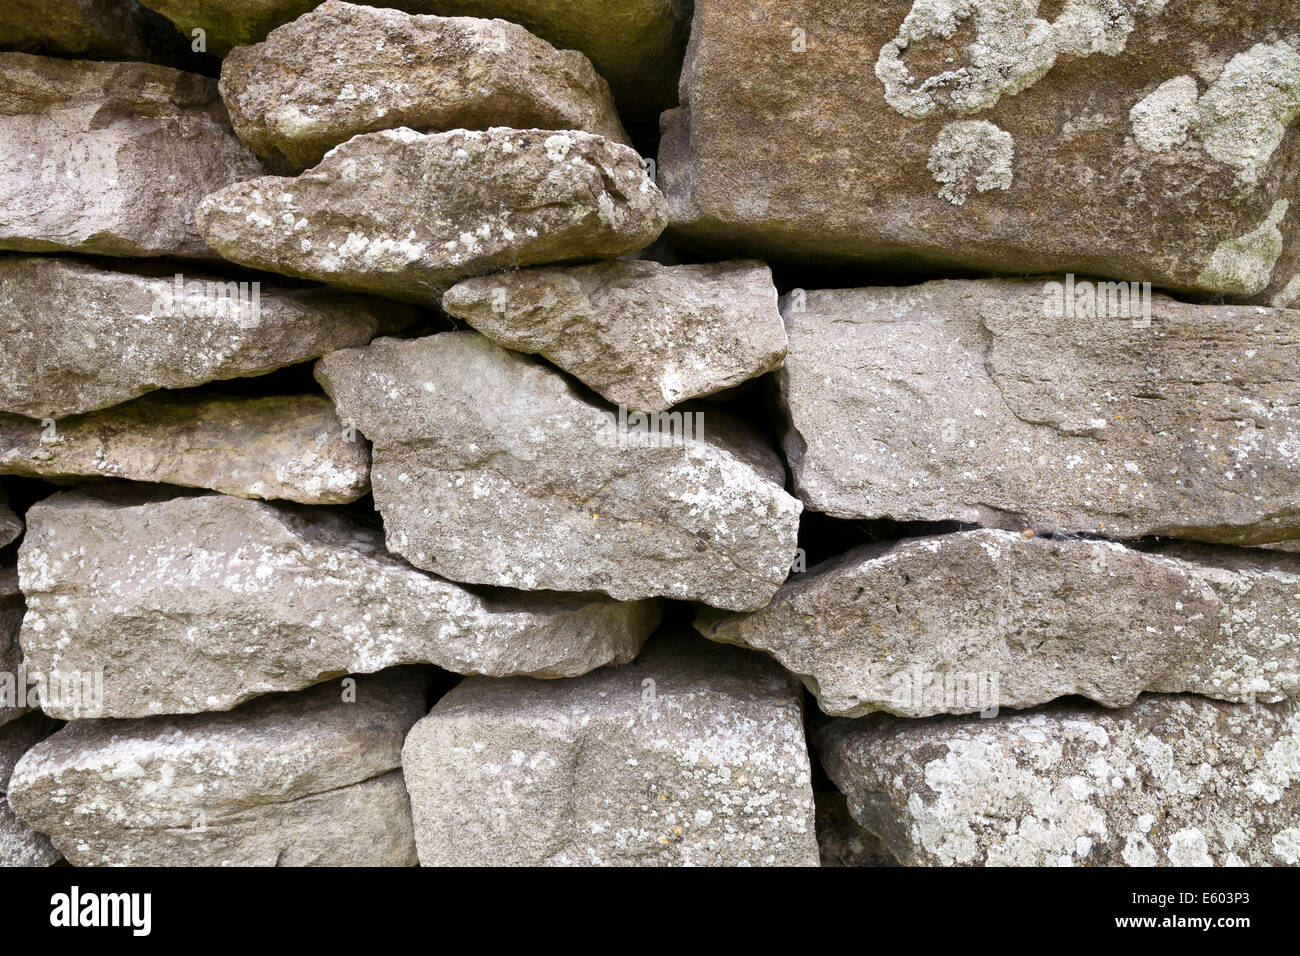 Close up of dry stone wall made from limestone, Cumbria, England - Stock Image